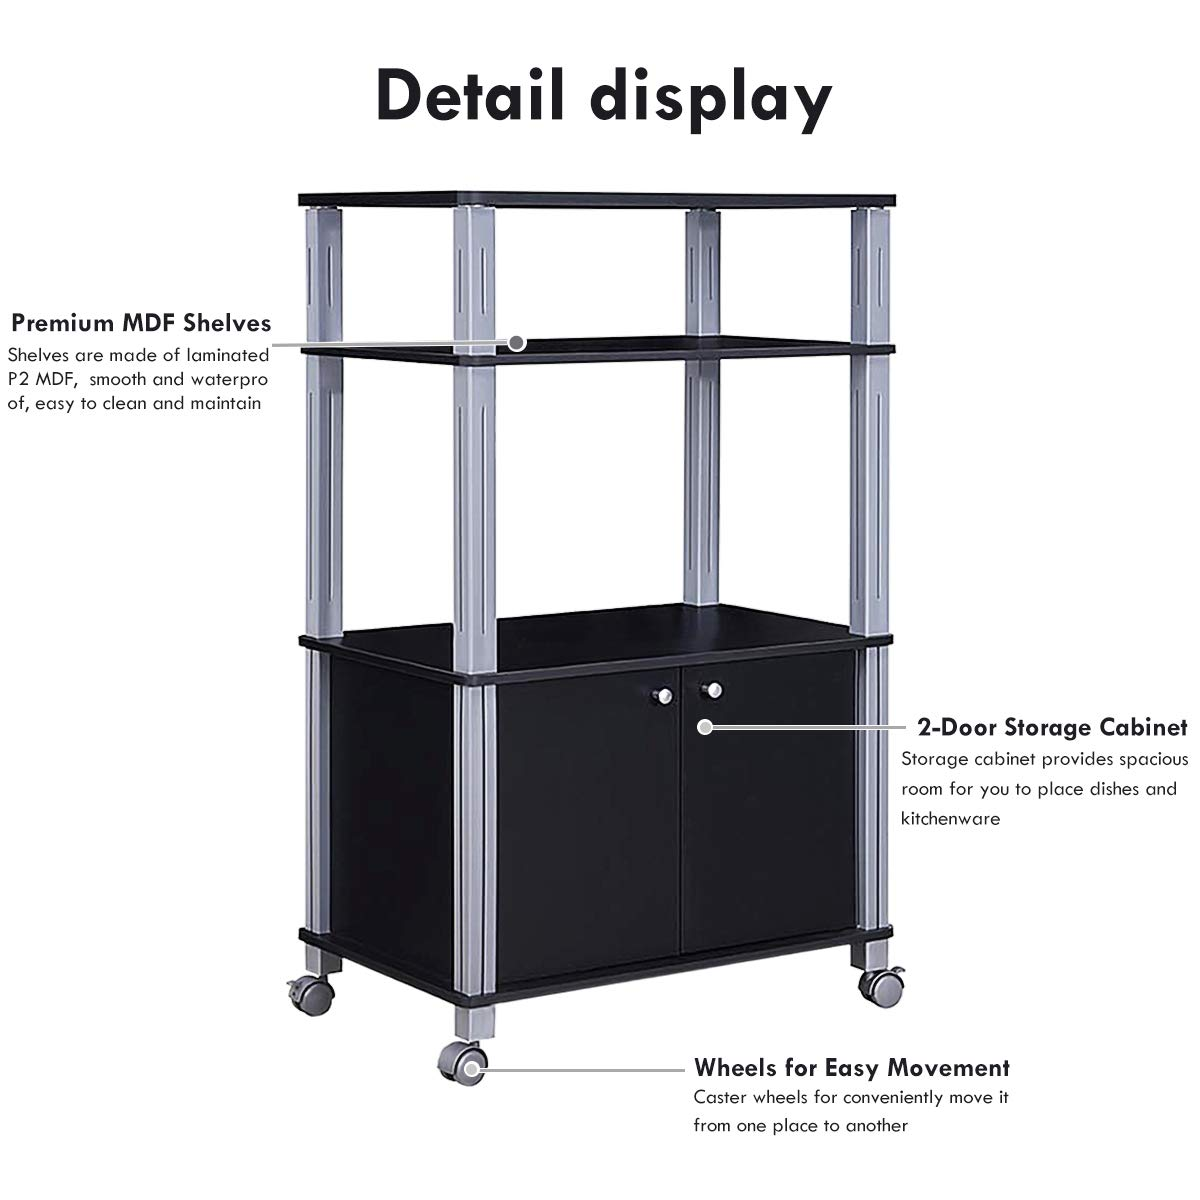 Giantex Rolling Kitchen Baker's Rack Microwave Oven Stand Utility Cart Multifunctional Display Shelf on Wheels with 2-Tier Shelf and Cabinet Spice Organizer for Kitchen Dining Room Furniture (Black) by Giantex (Image #4)